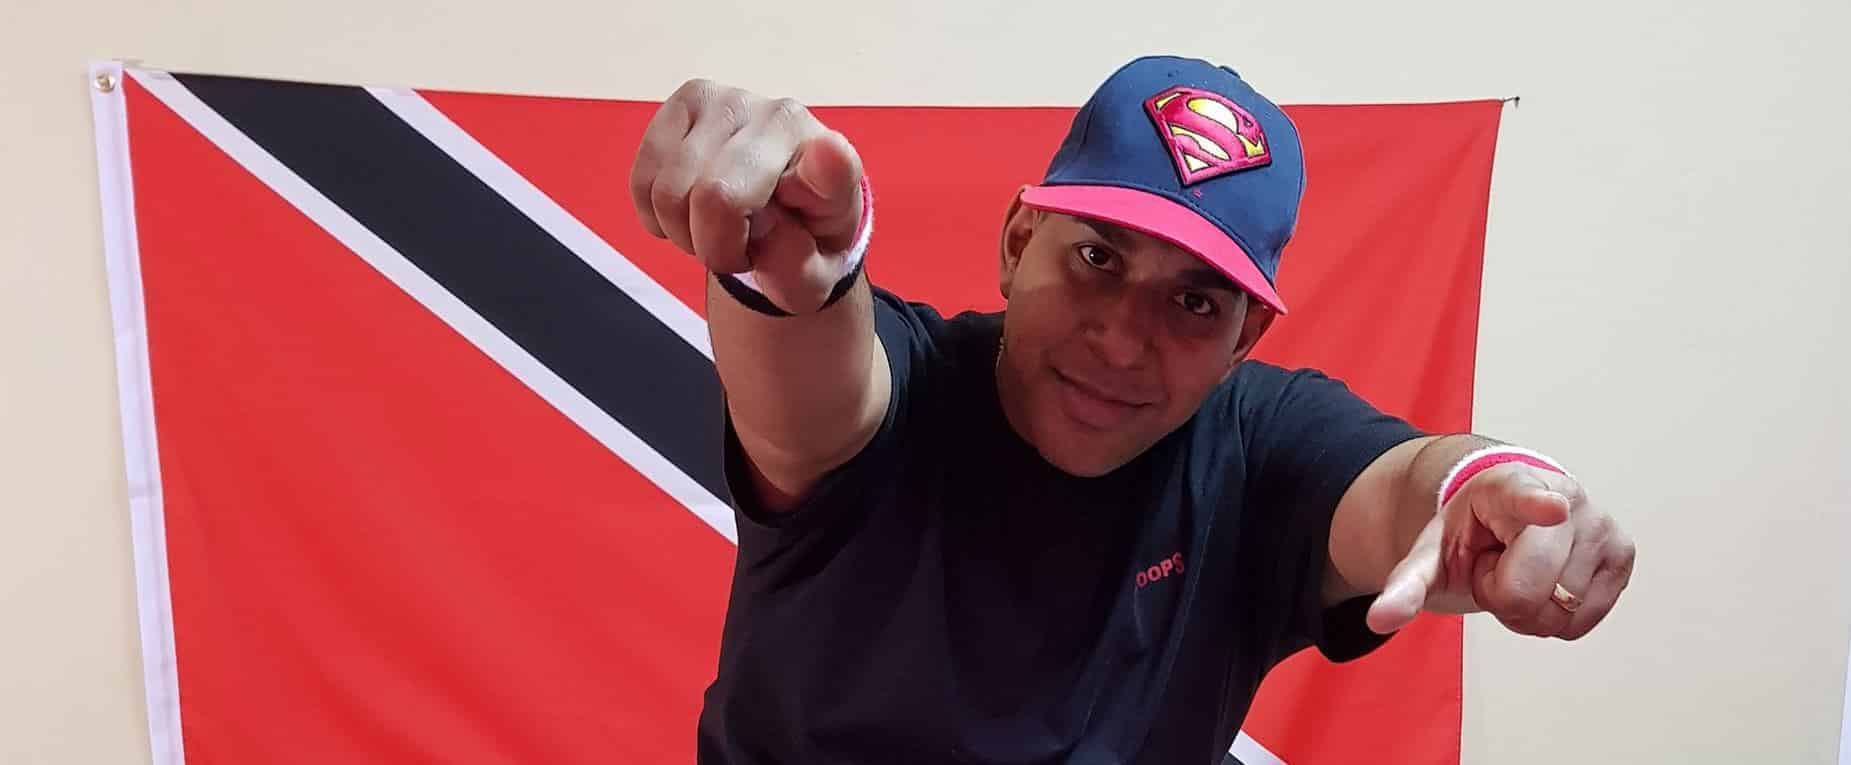 djfloops trinidad tobago flag